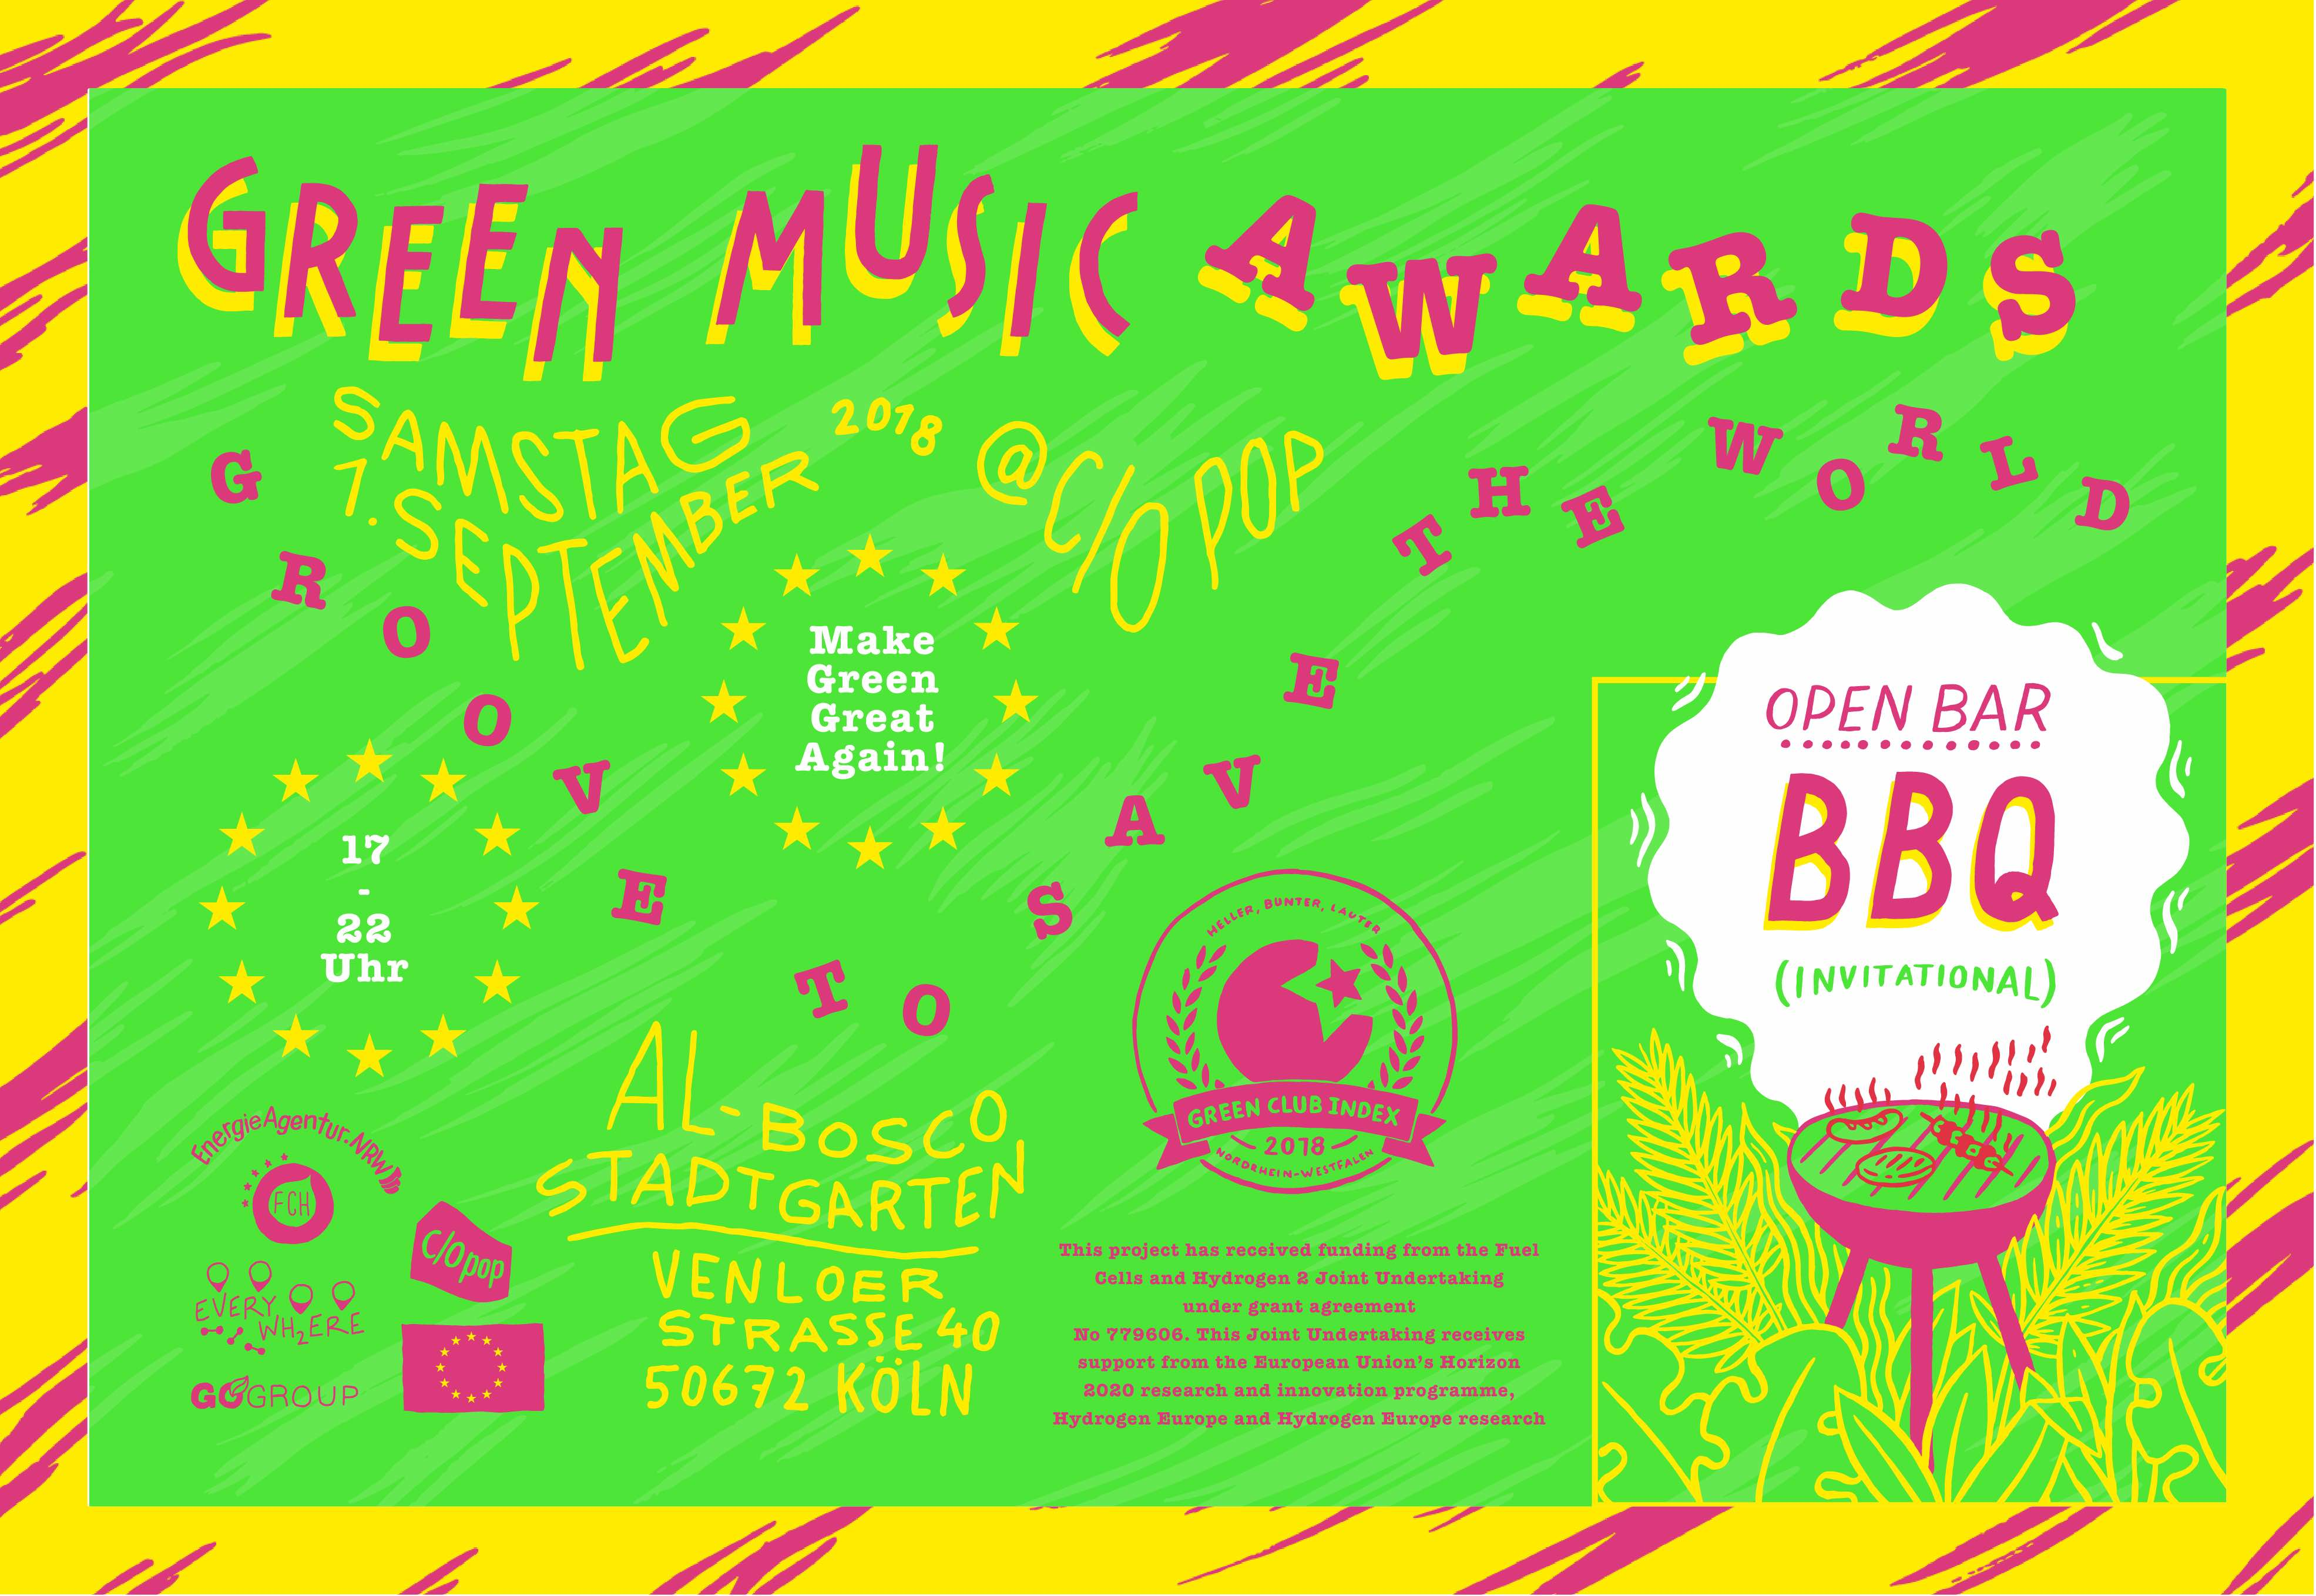 Green Music Awards 2018